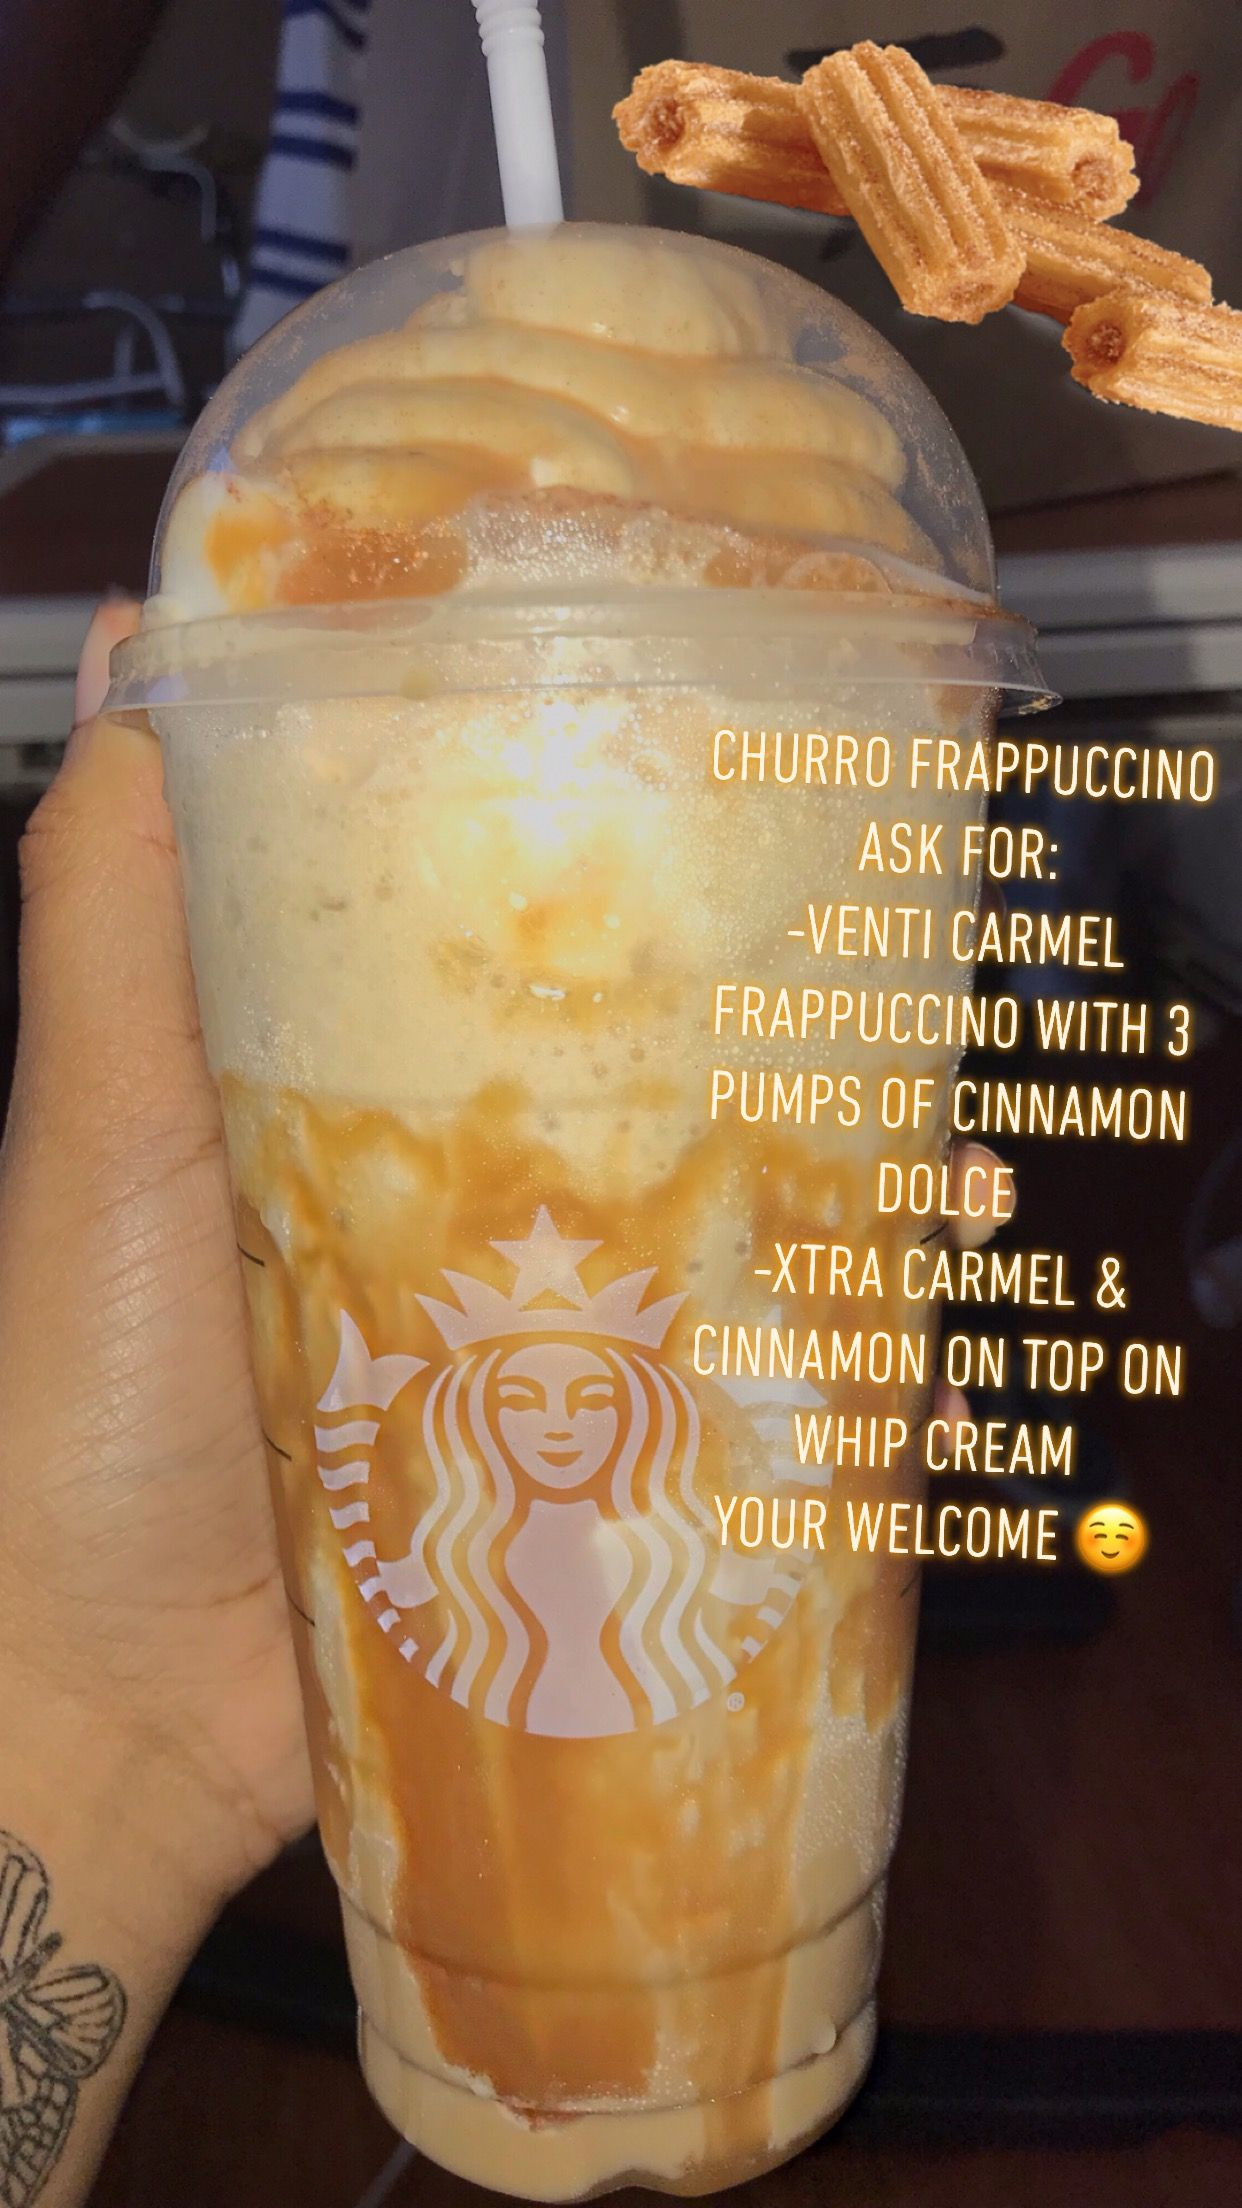 Pin by Nadiagrimsley on Foods & Drinks > Starbucks